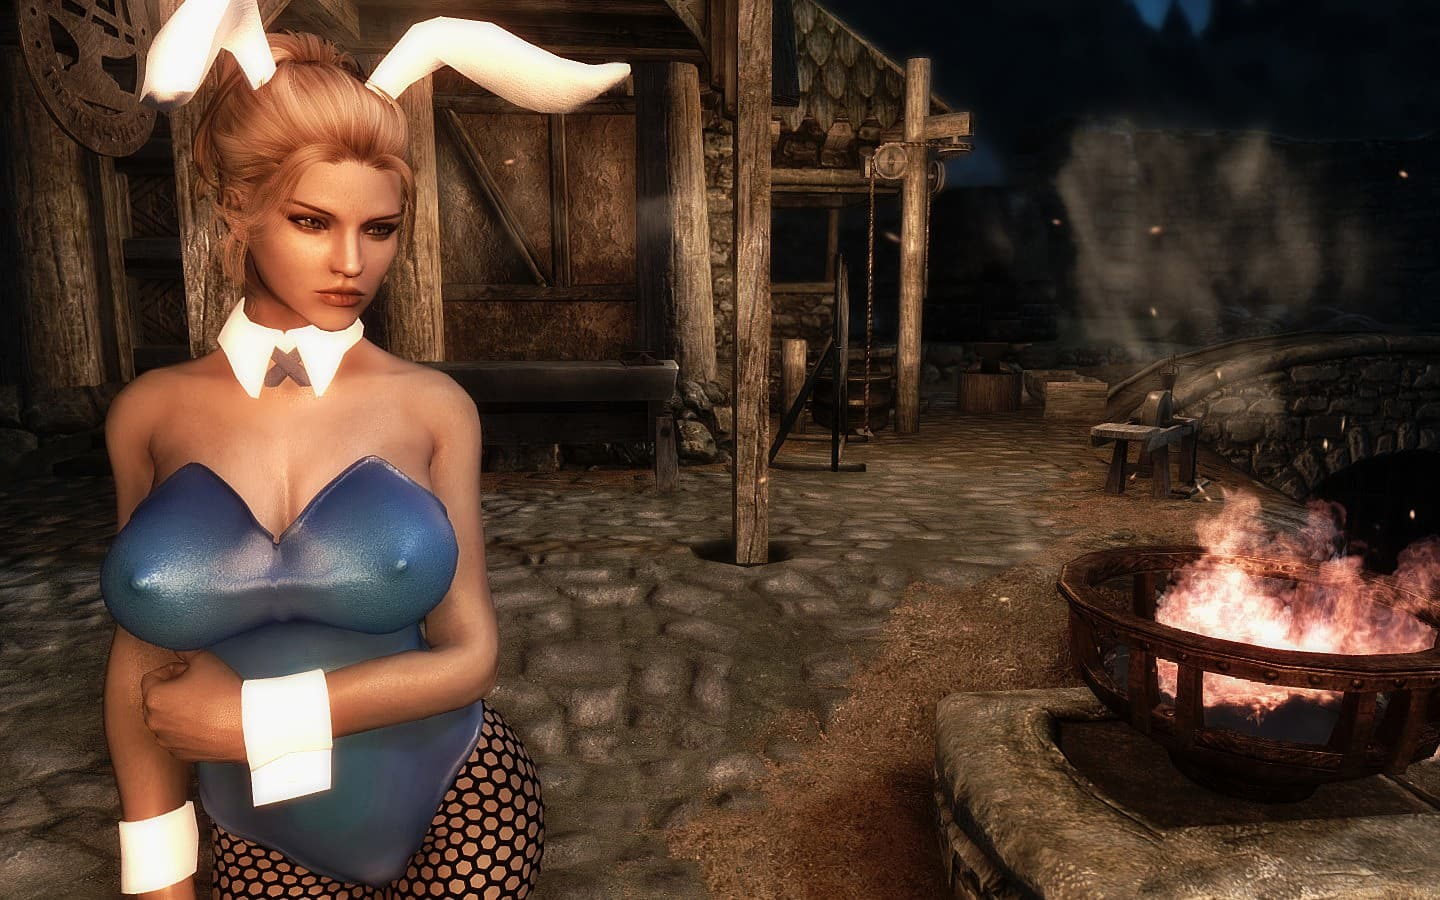 Skyrim nude patch very pity